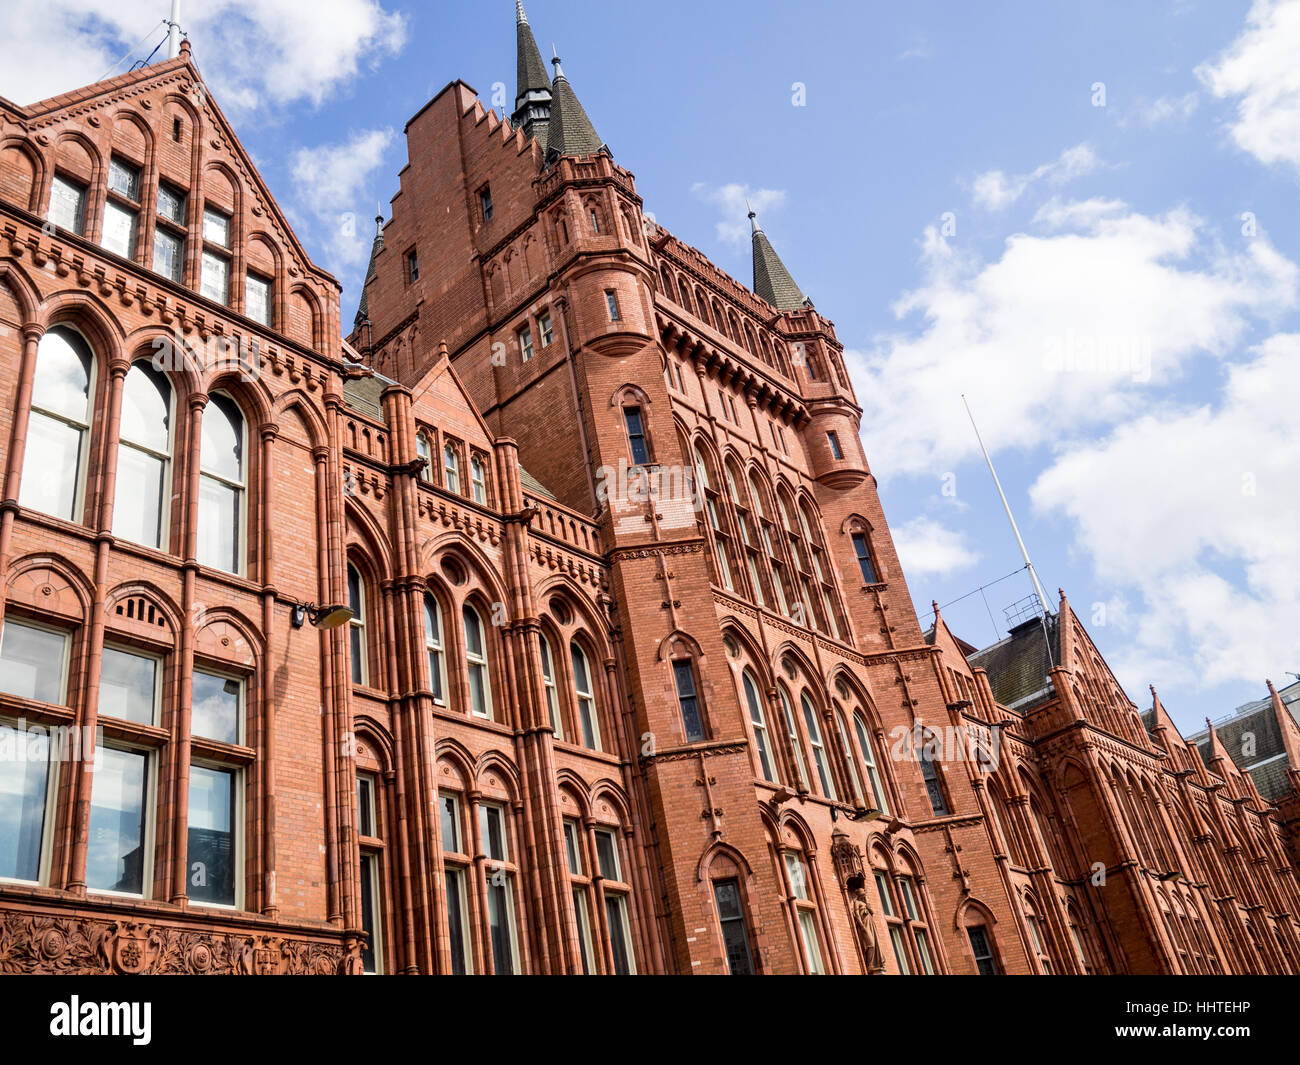 Holborn Bars, also known as the Prudential Assurance Building in Holborn, Central London (former Prudential Assurance - Stock Image